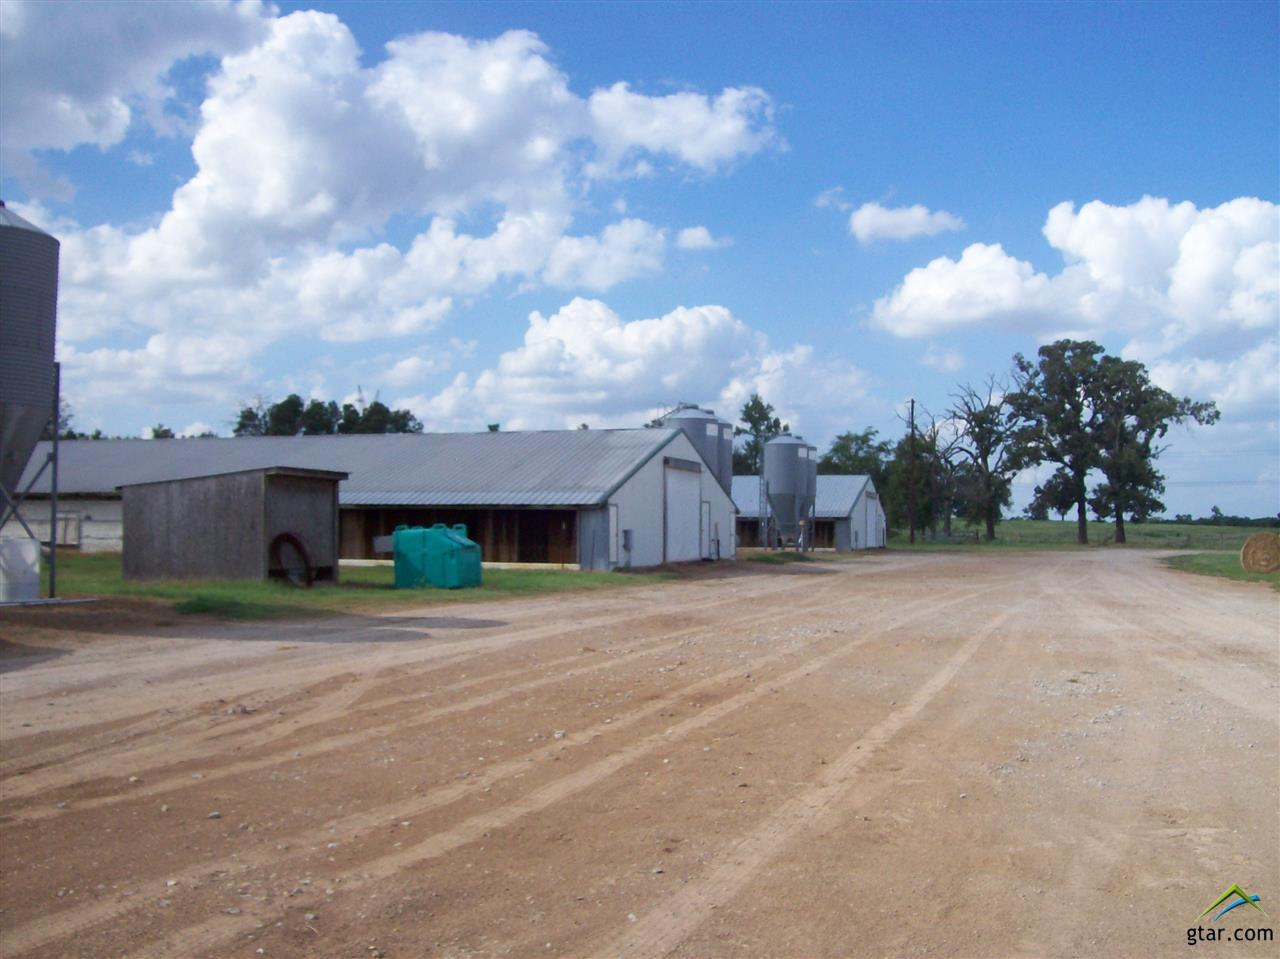 POULTRY FARM FOR SALE 4 40X300 POULTRY HOUSES BUILT IN 1989 AND IN GOOD OPERATING CONDITION ON 11.738 ACRES. CHORE TIME EQUIPMENT AND PLYTHON WATER SYSTEM. 1 WELL AND COMMUNITY WATER. CALL FOR APPOINTMENT TO SEE